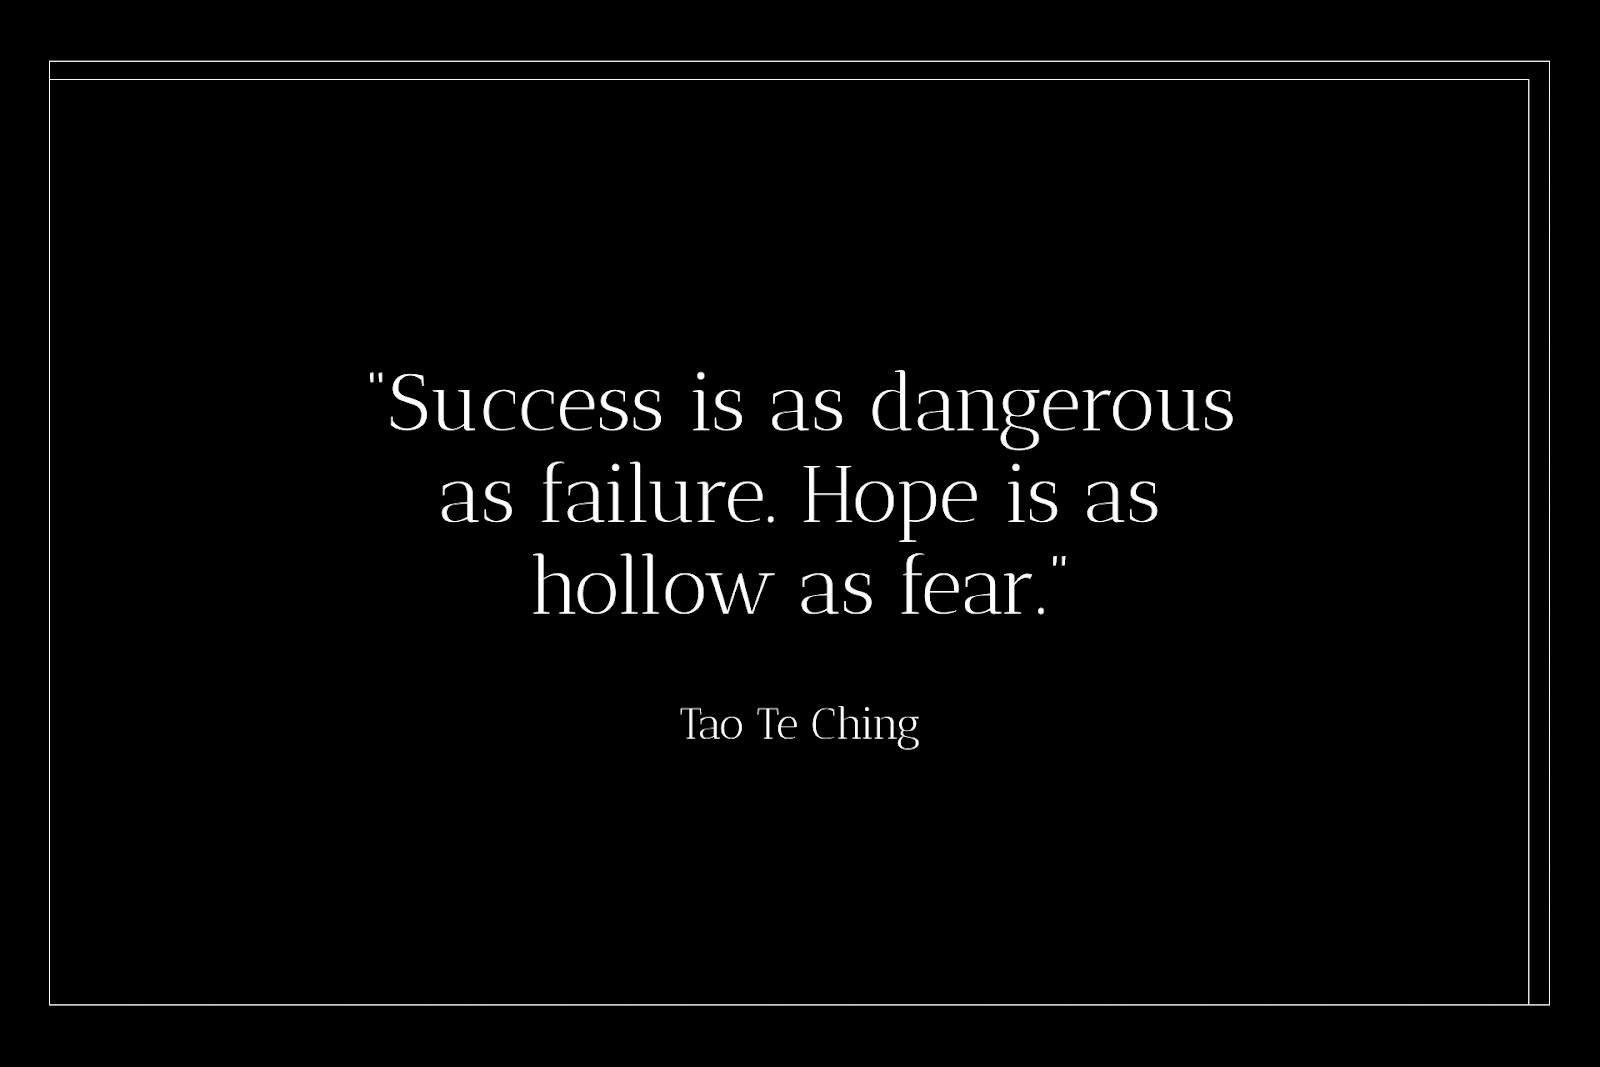 """A poem about hope starts with the lines, """"Success is as dangerous as failure. Hope is as hollow as fear."""""""